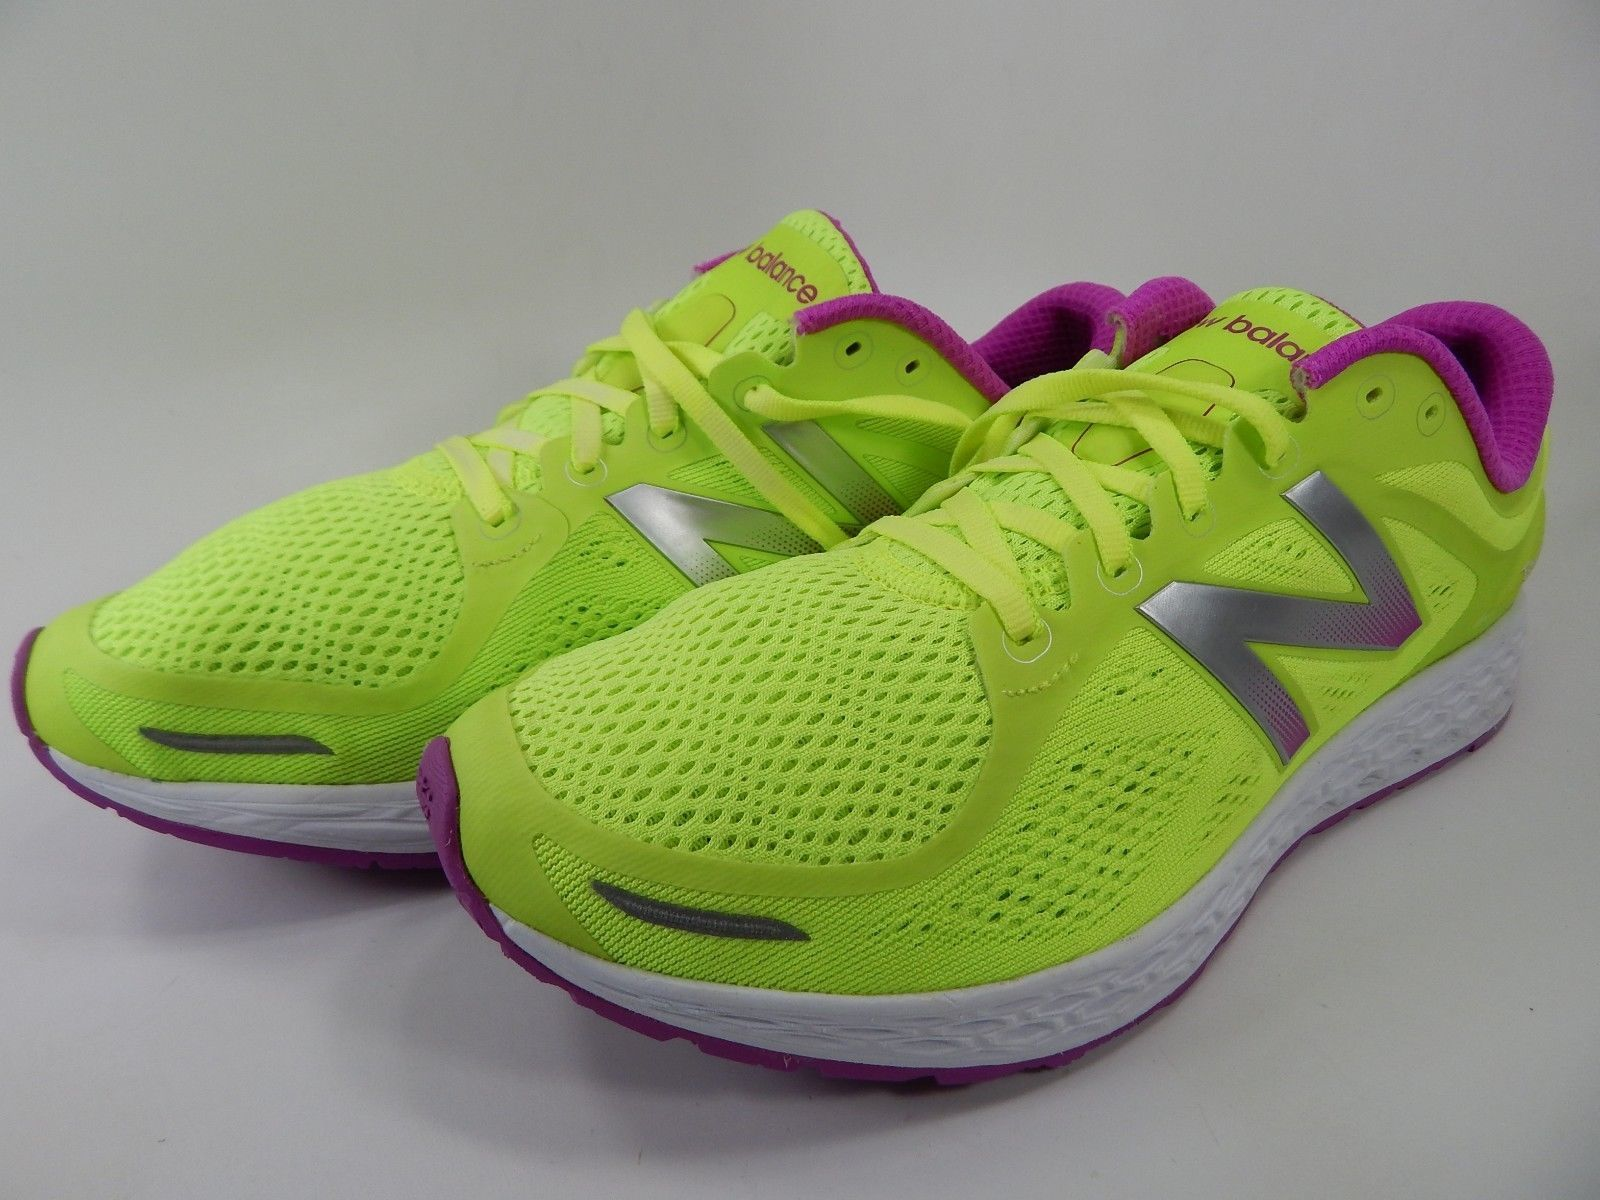 New Balance Fresh Foam Zante v2 Sz 11 M (B) EU 43 Women's Shoes Green WZANTGP2